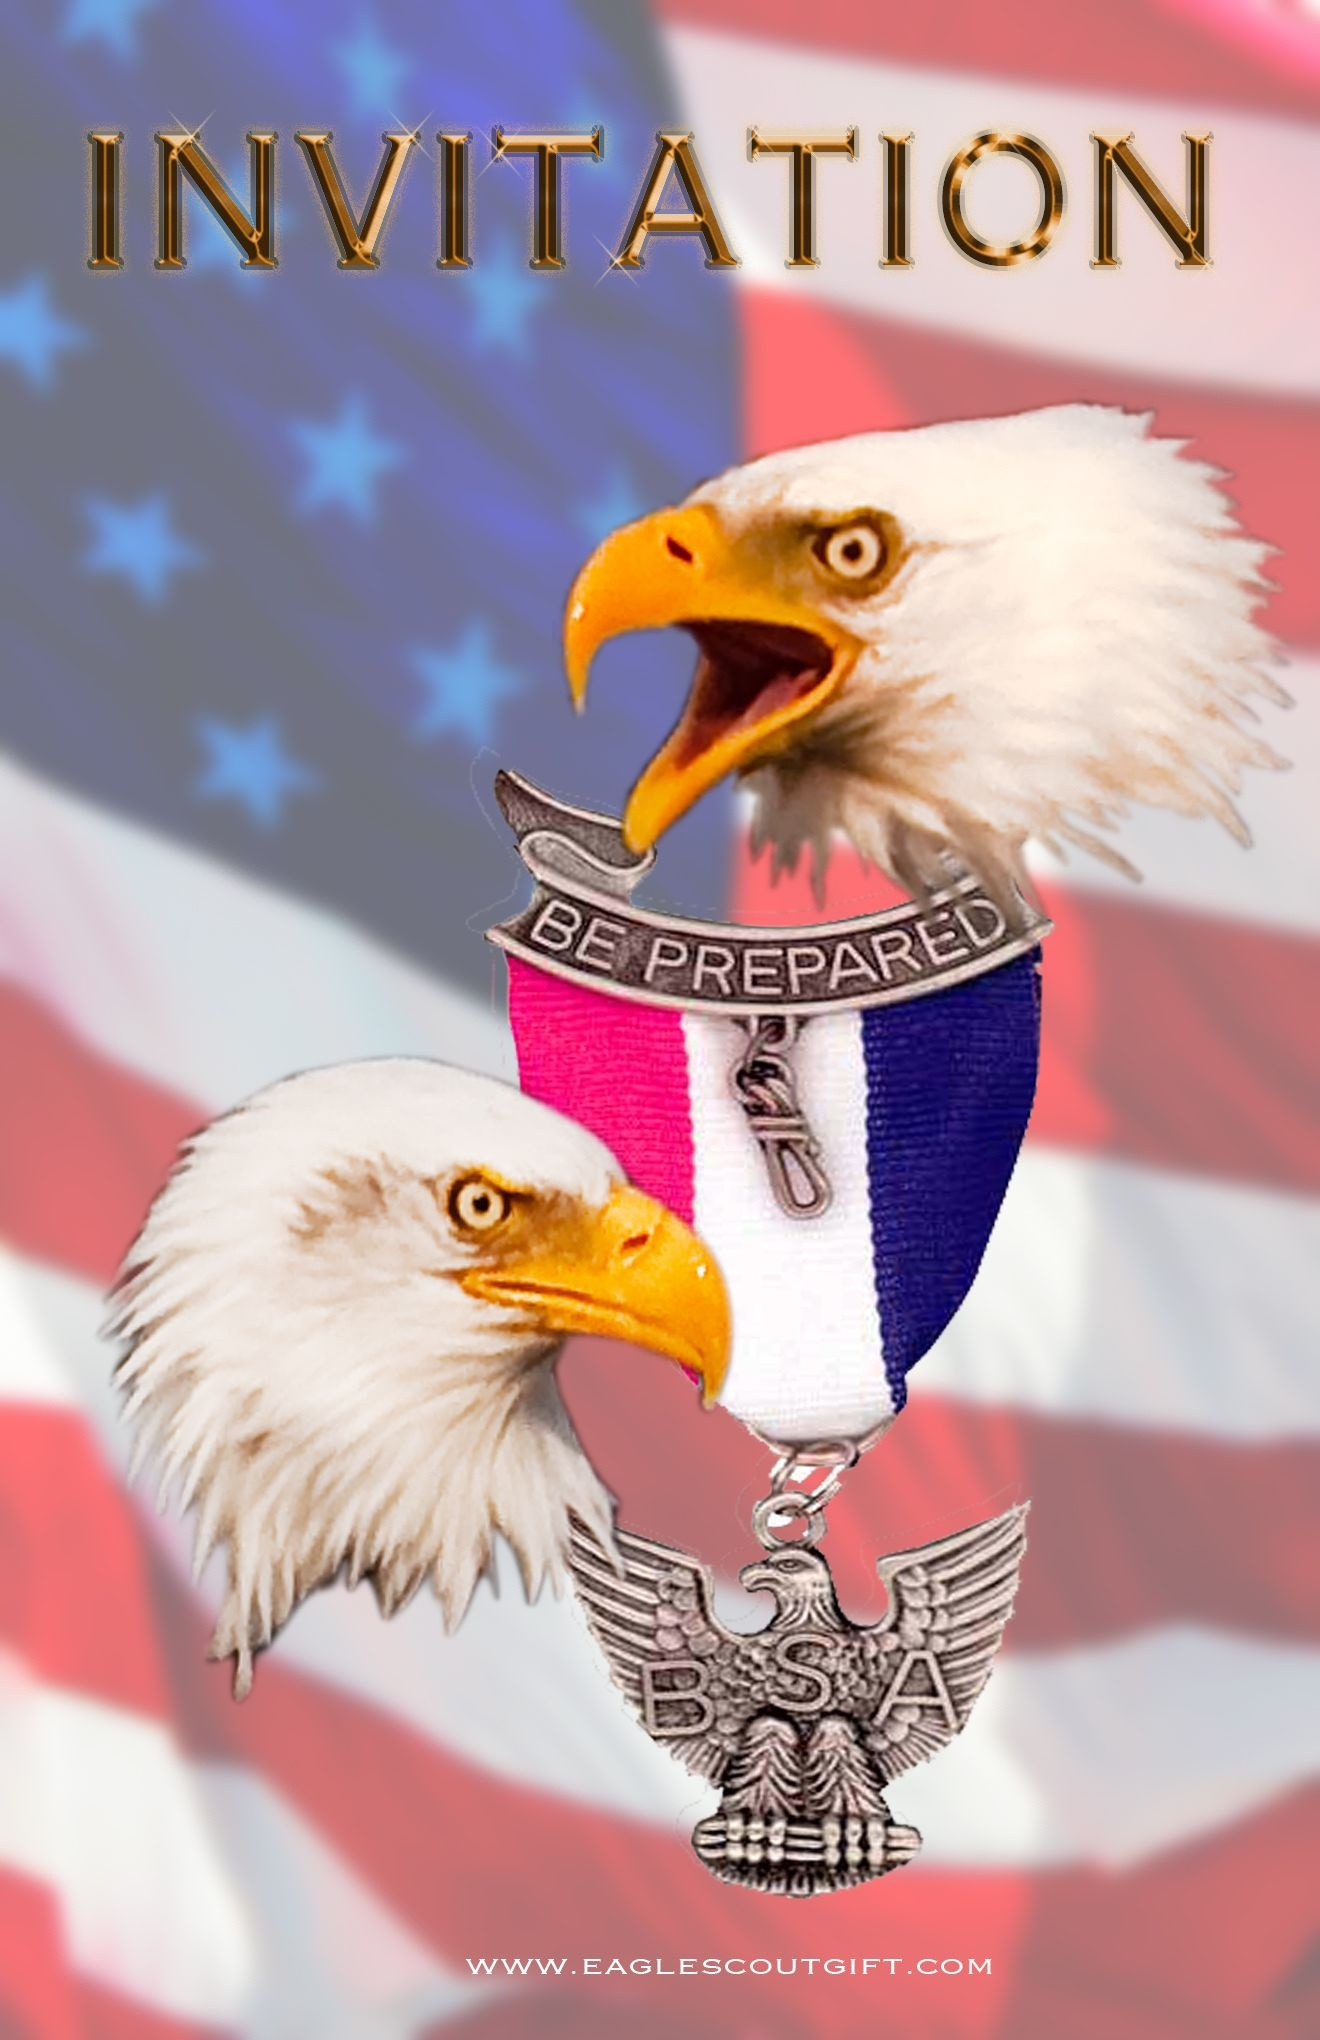 Eagle Scout Gift - Free Downloads, Invitation, Program And - Free Eagle Scout Printables